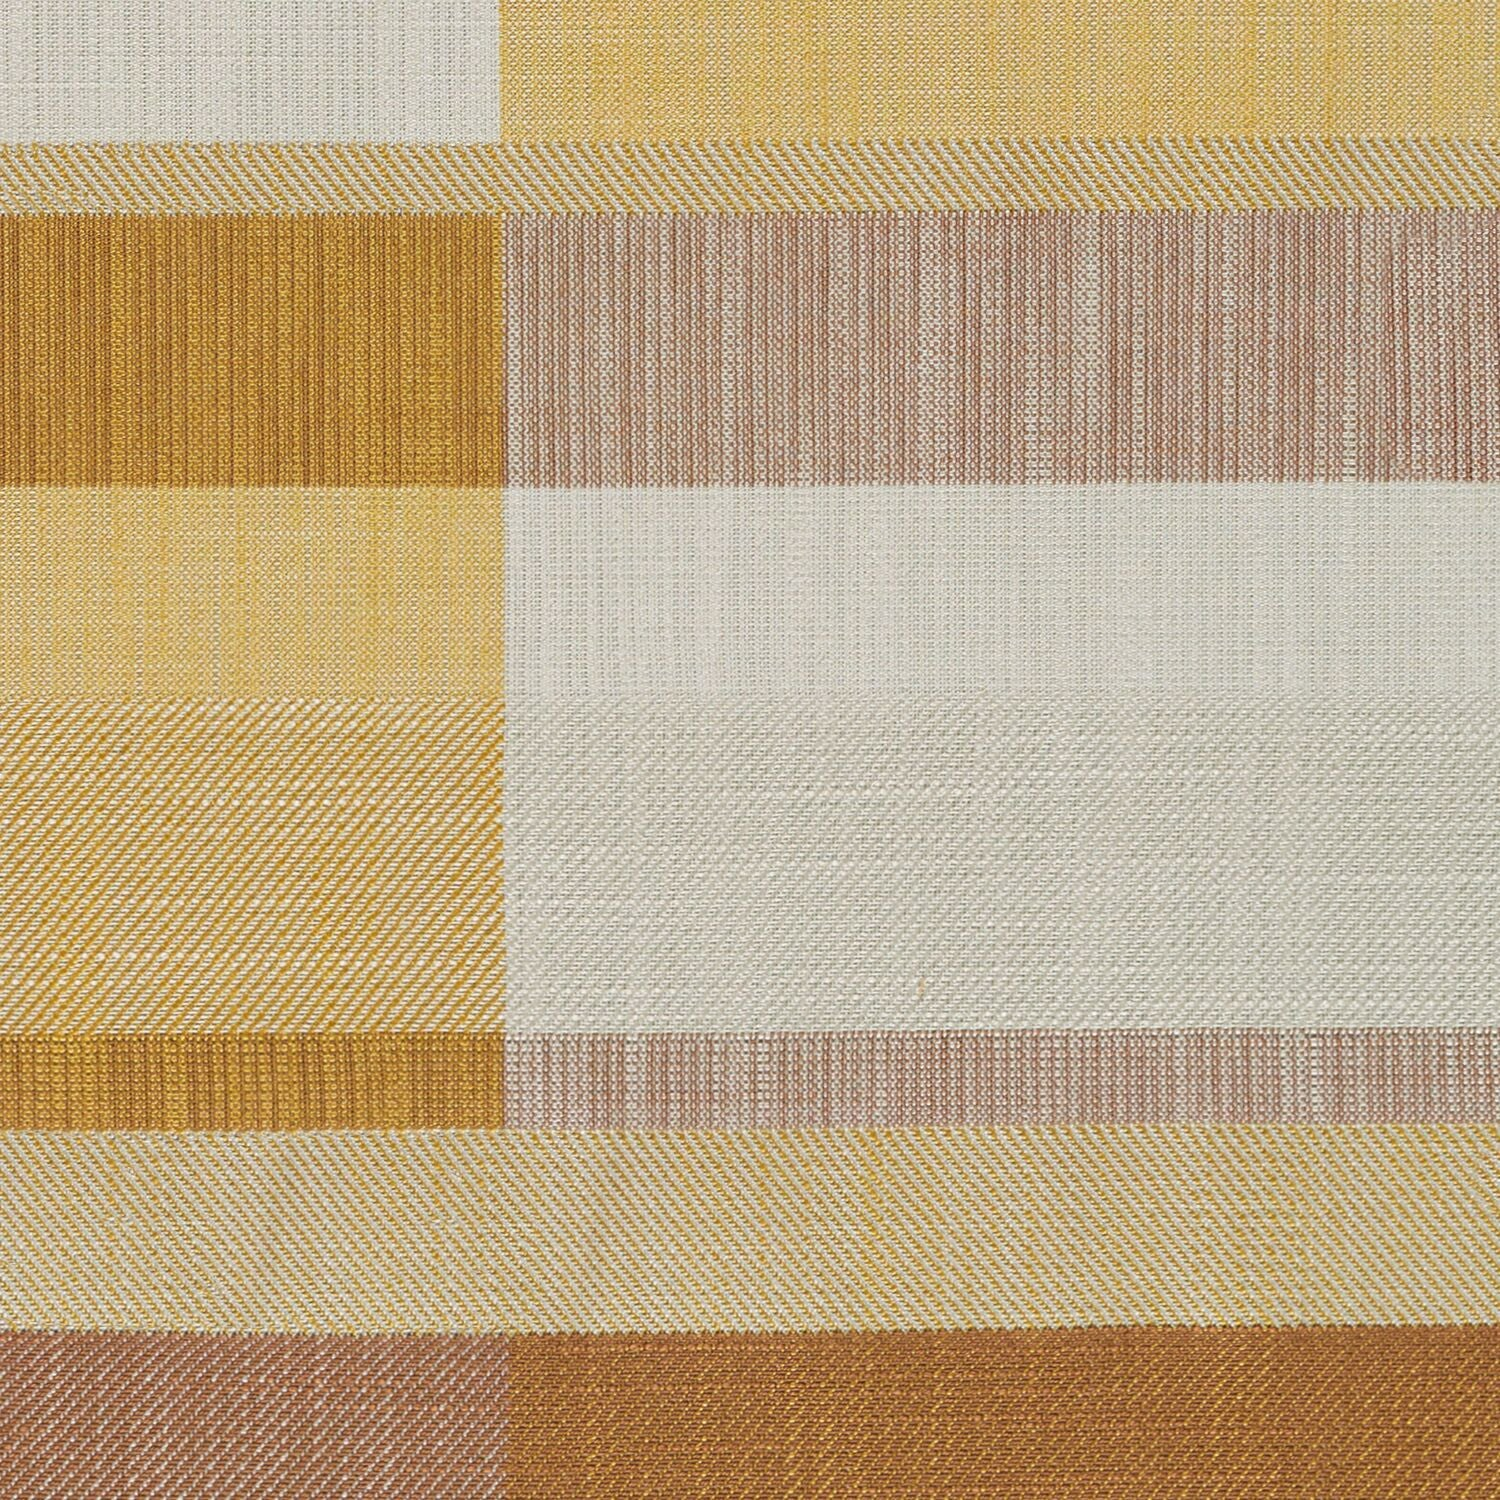 Structured Stripe - Double Beam - 4075 - 04 - Half Yard